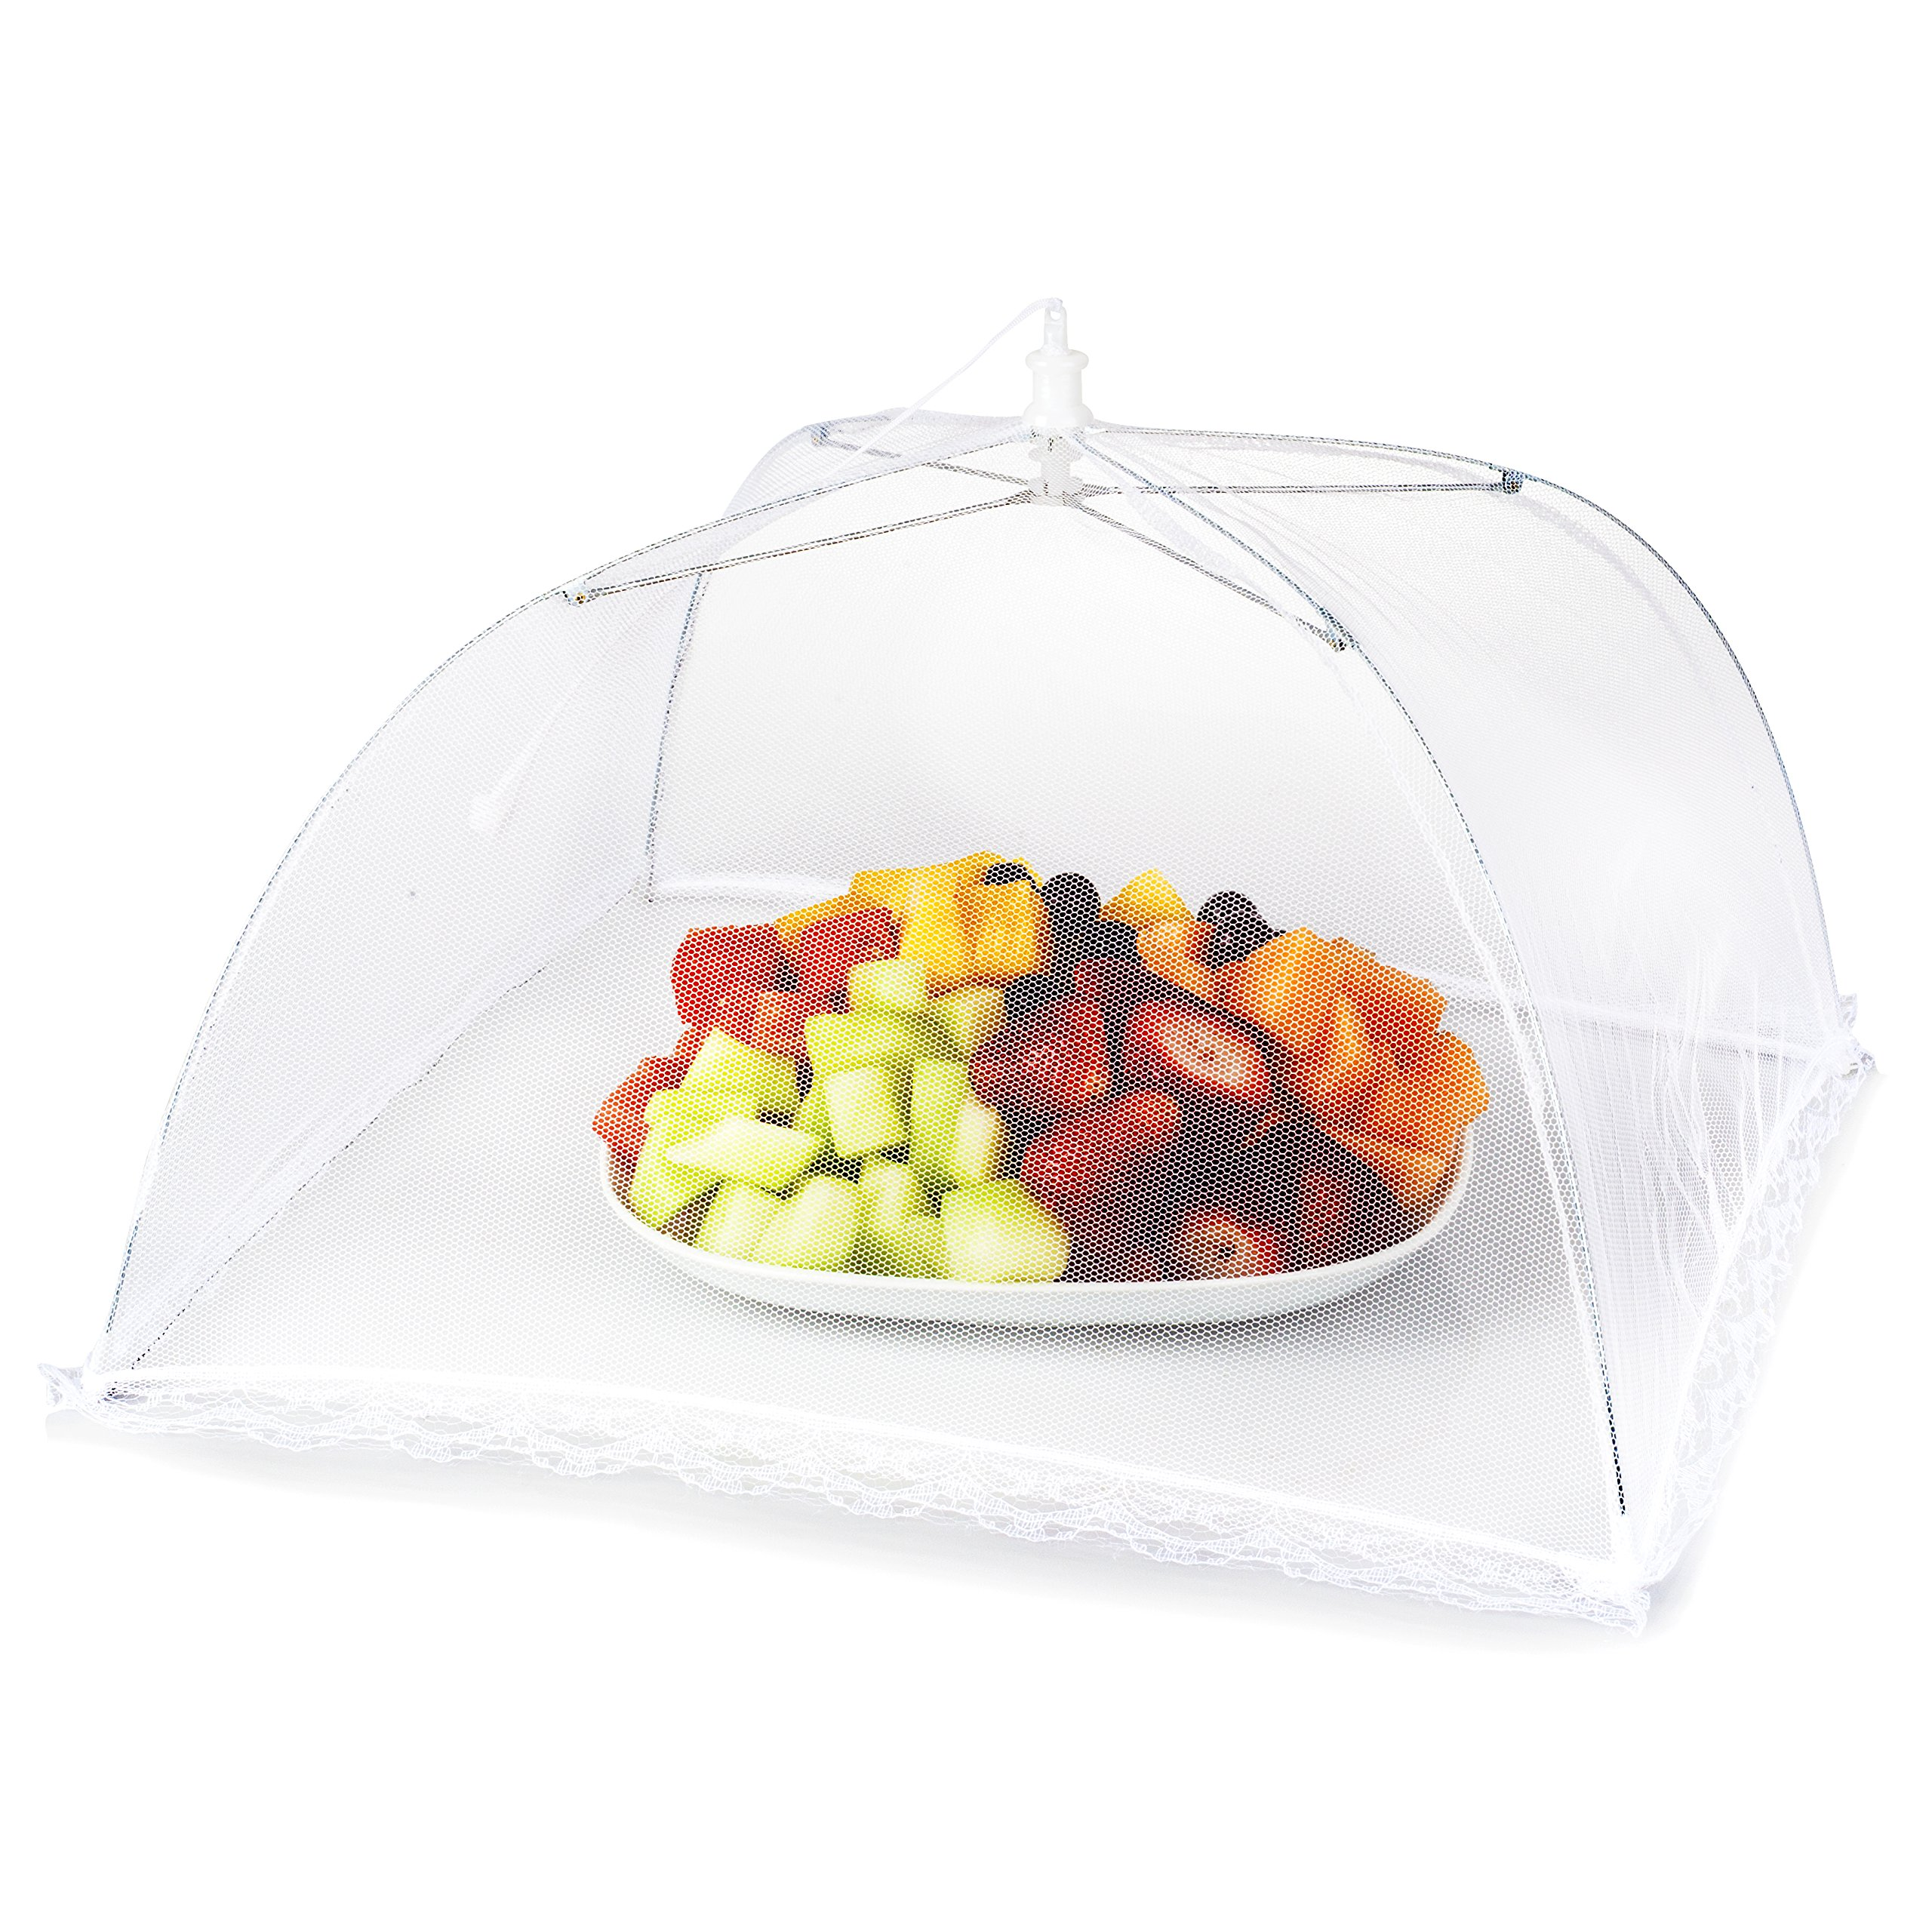 Mesh Picnic Food Tent Covers: 6 Collapsible Umbrella Tents for Picnics, BBQ, Camping & Outdoor Cooking; Reusable Pop Up Dome Screen Net & Plate Protector; Shields Food Plates & Glasses From Flies, Bug